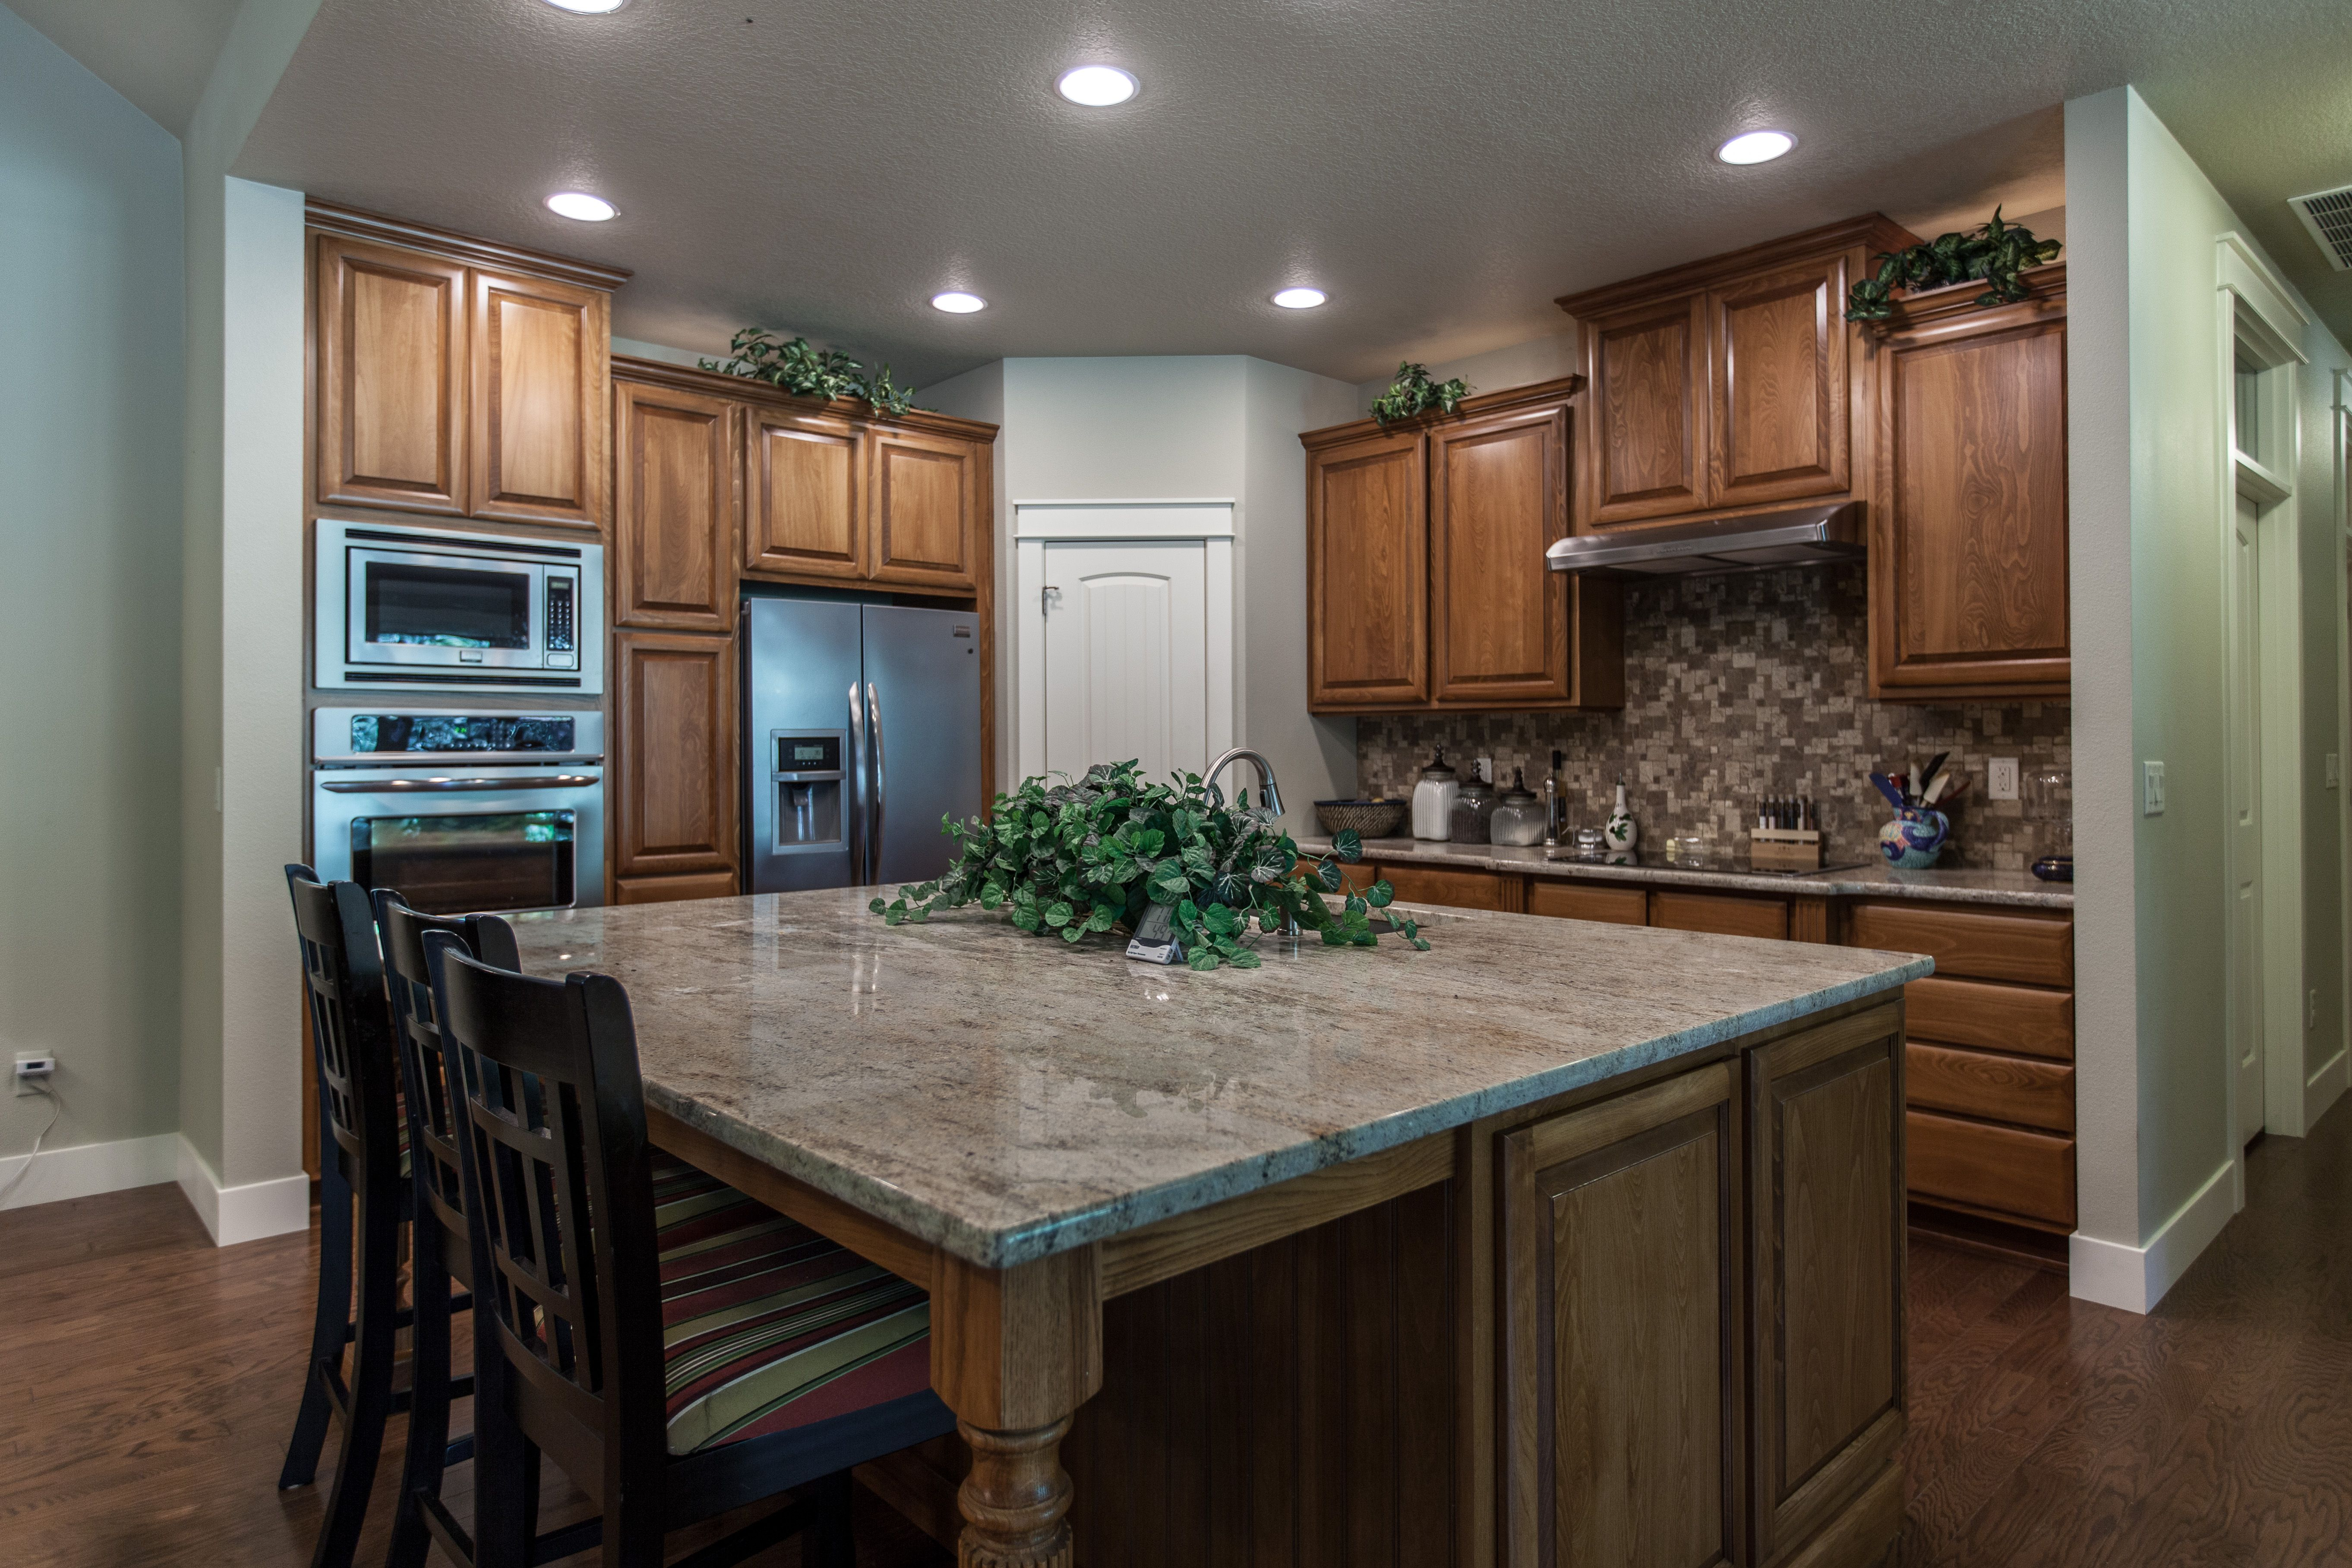 Kitchen with large island and stainless steel appliances